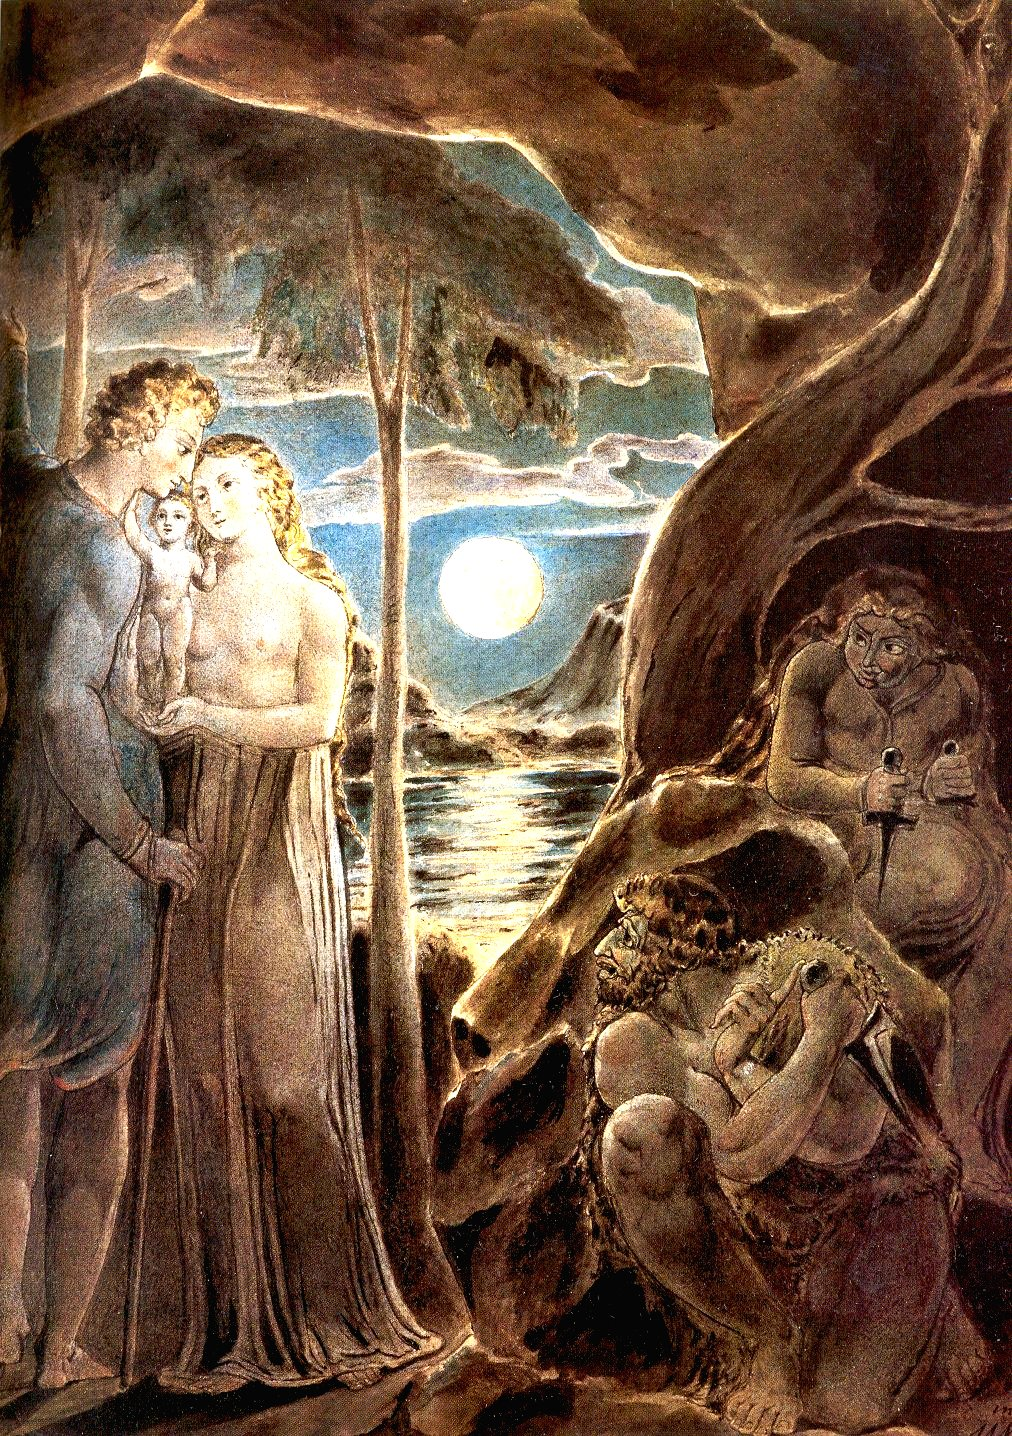 william blakes spirituality William blake was a visionary poet and artist, wrote epics and children's rhymes, and made illustrated books that still admired.